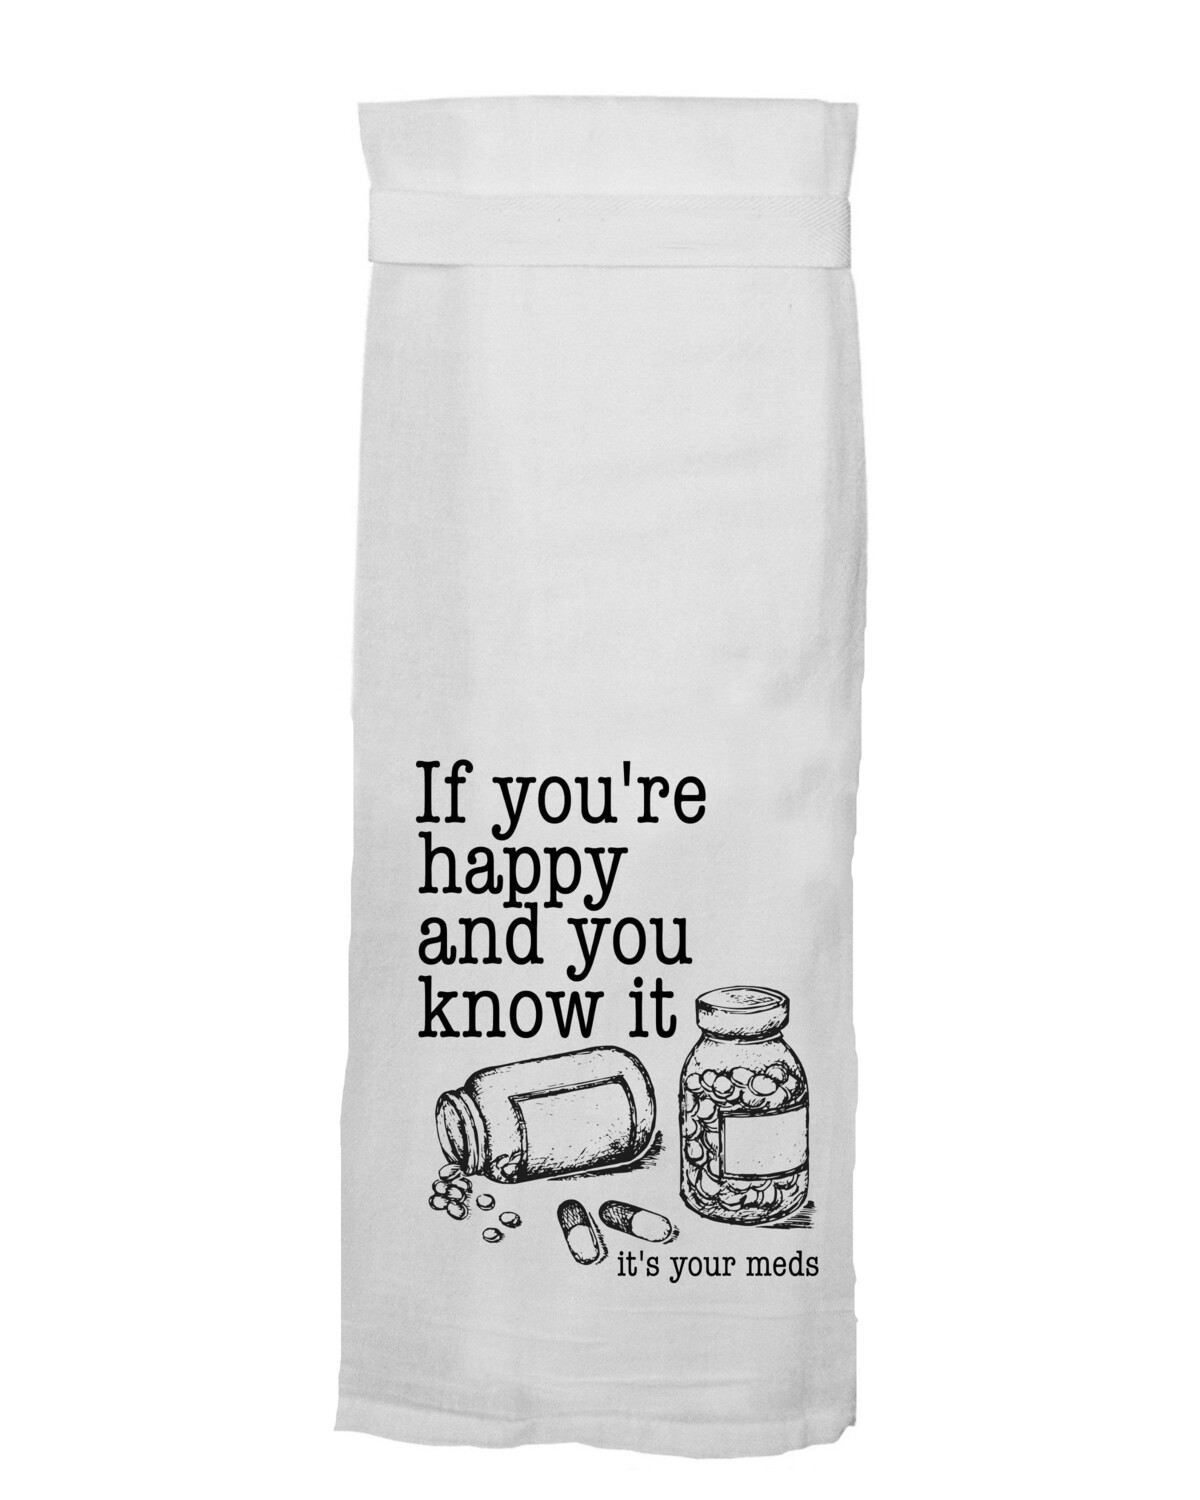 If You're Happy and You Know It Hang Tight Towel By Twisted Wares